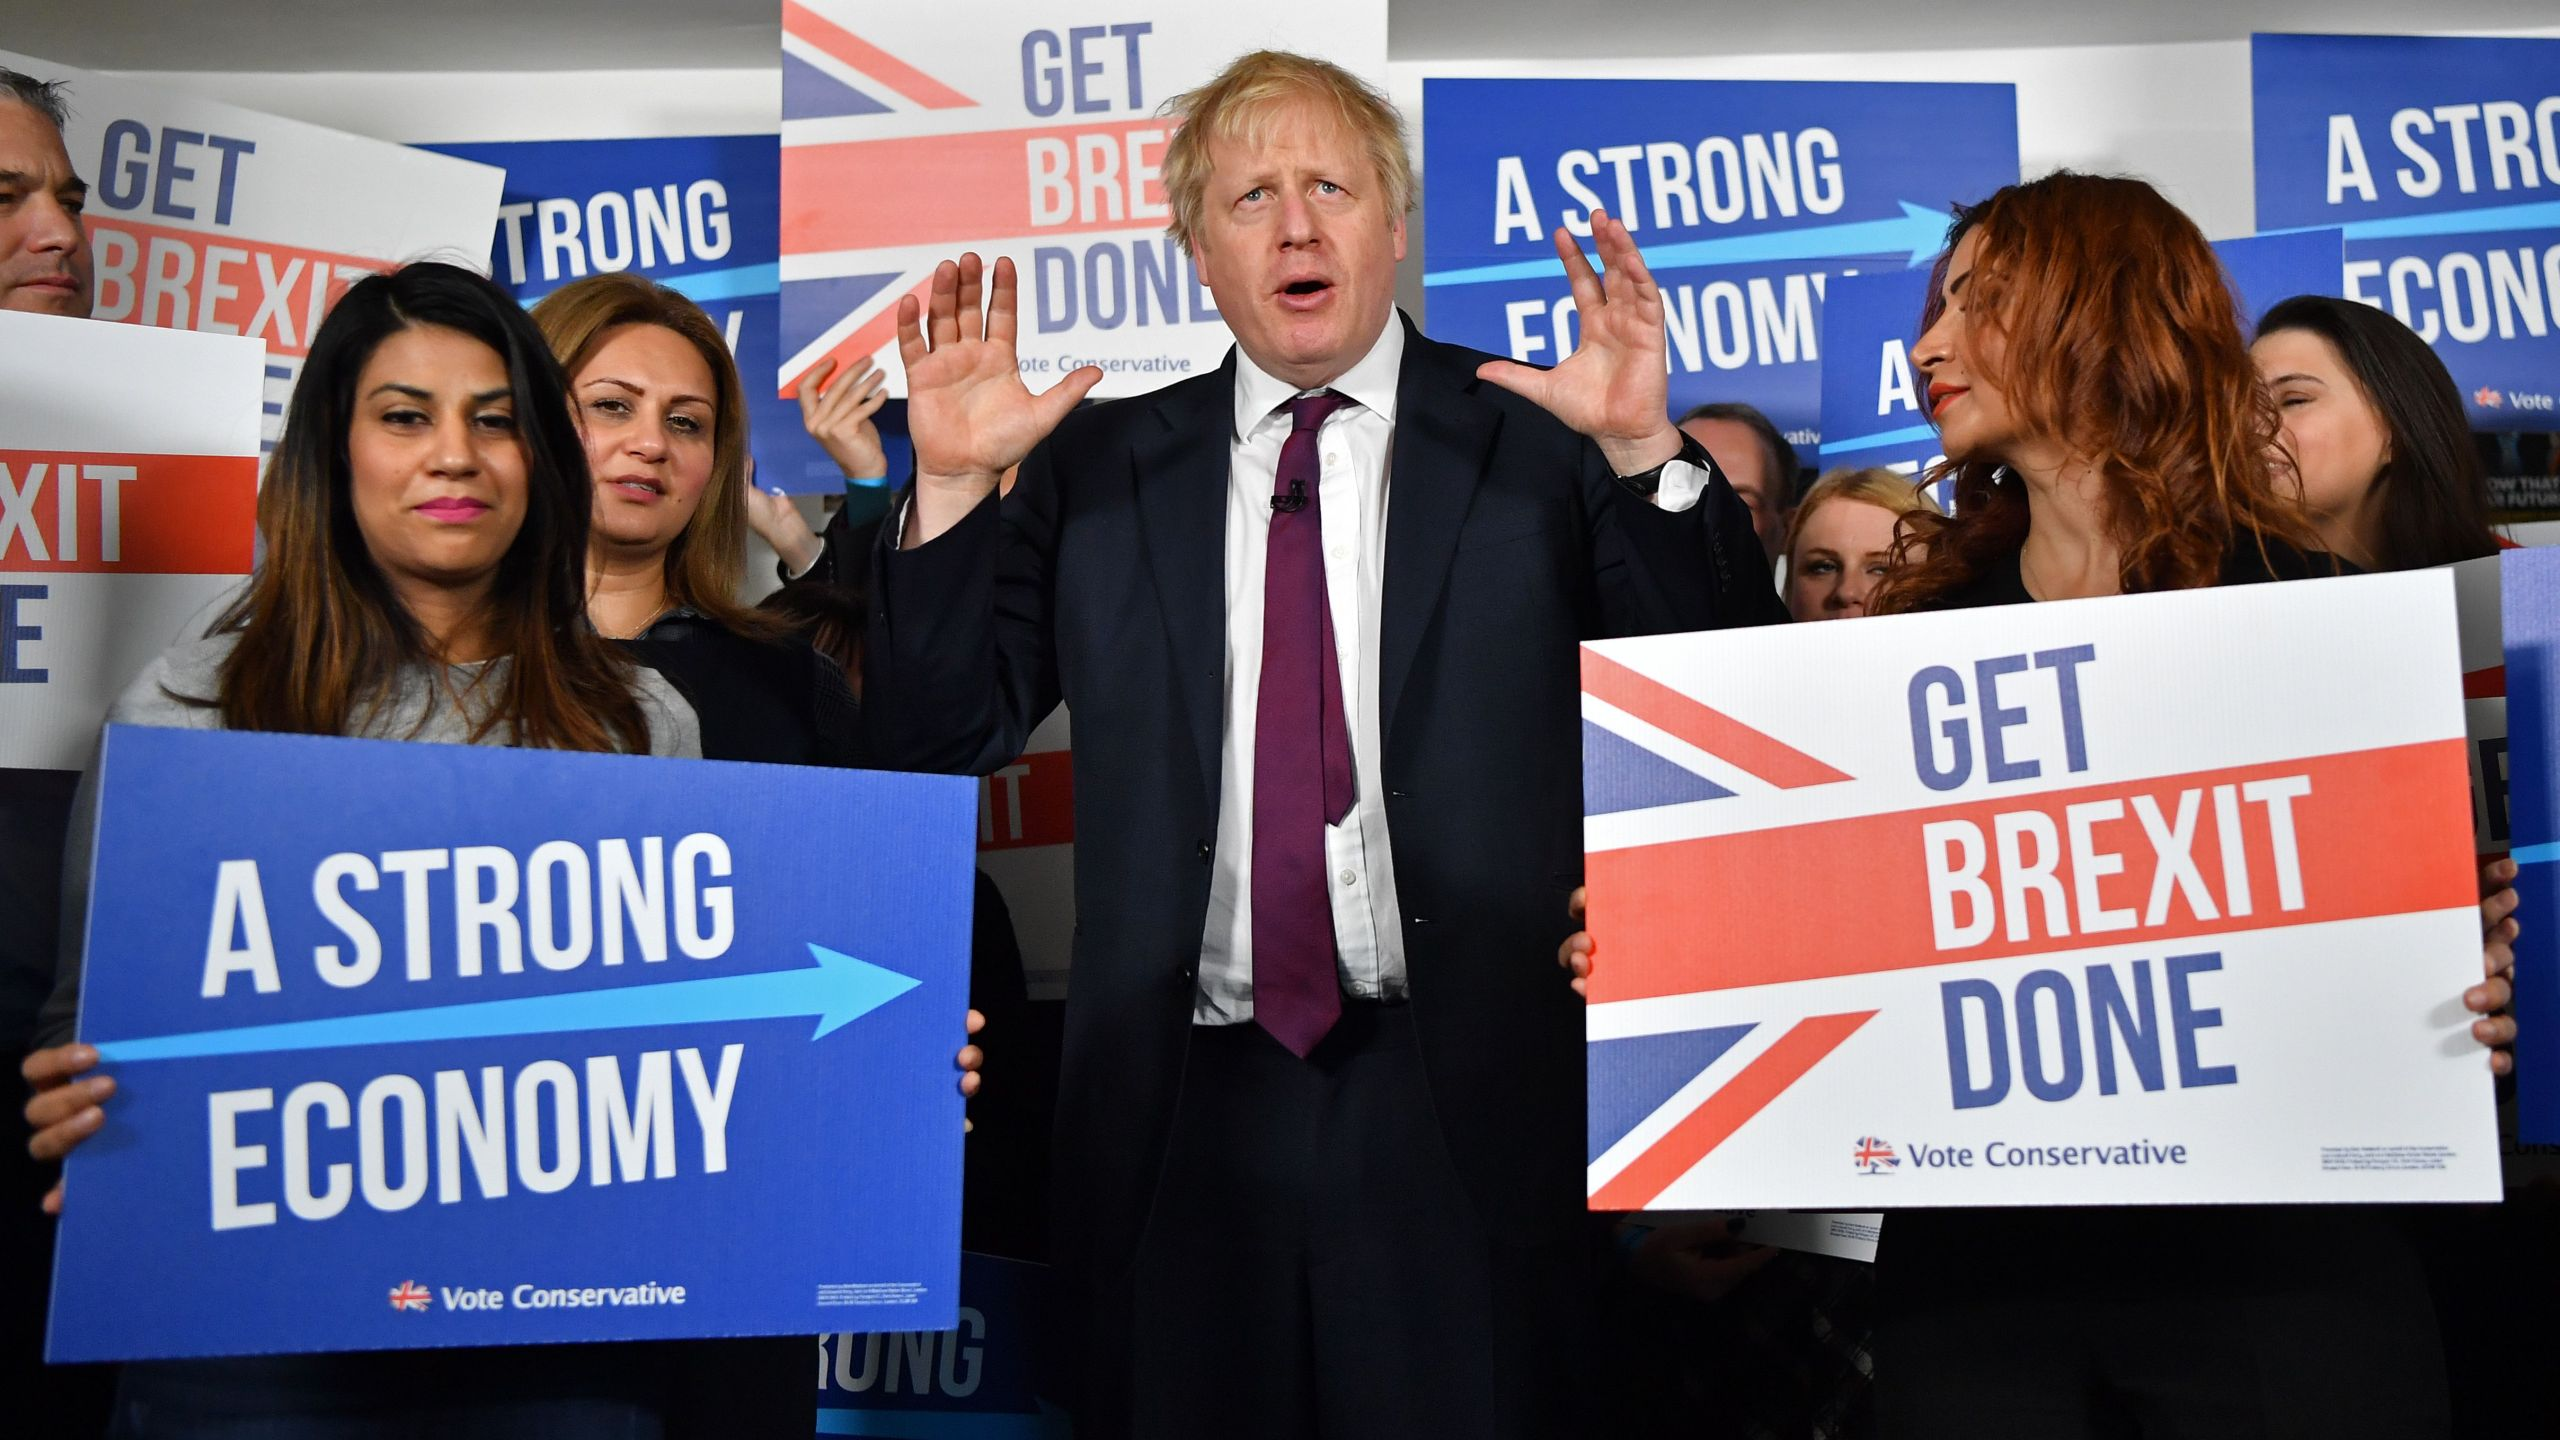 Britain's Prime Minister Boris Johnson speaks to activists and supporters as he poses for a photograph at the Conservative Campaign Headquarters Call Centre in central London on Dec. 8, 2019. (Credit: BEN STANSALL/POOL/AFP via Getty Images)